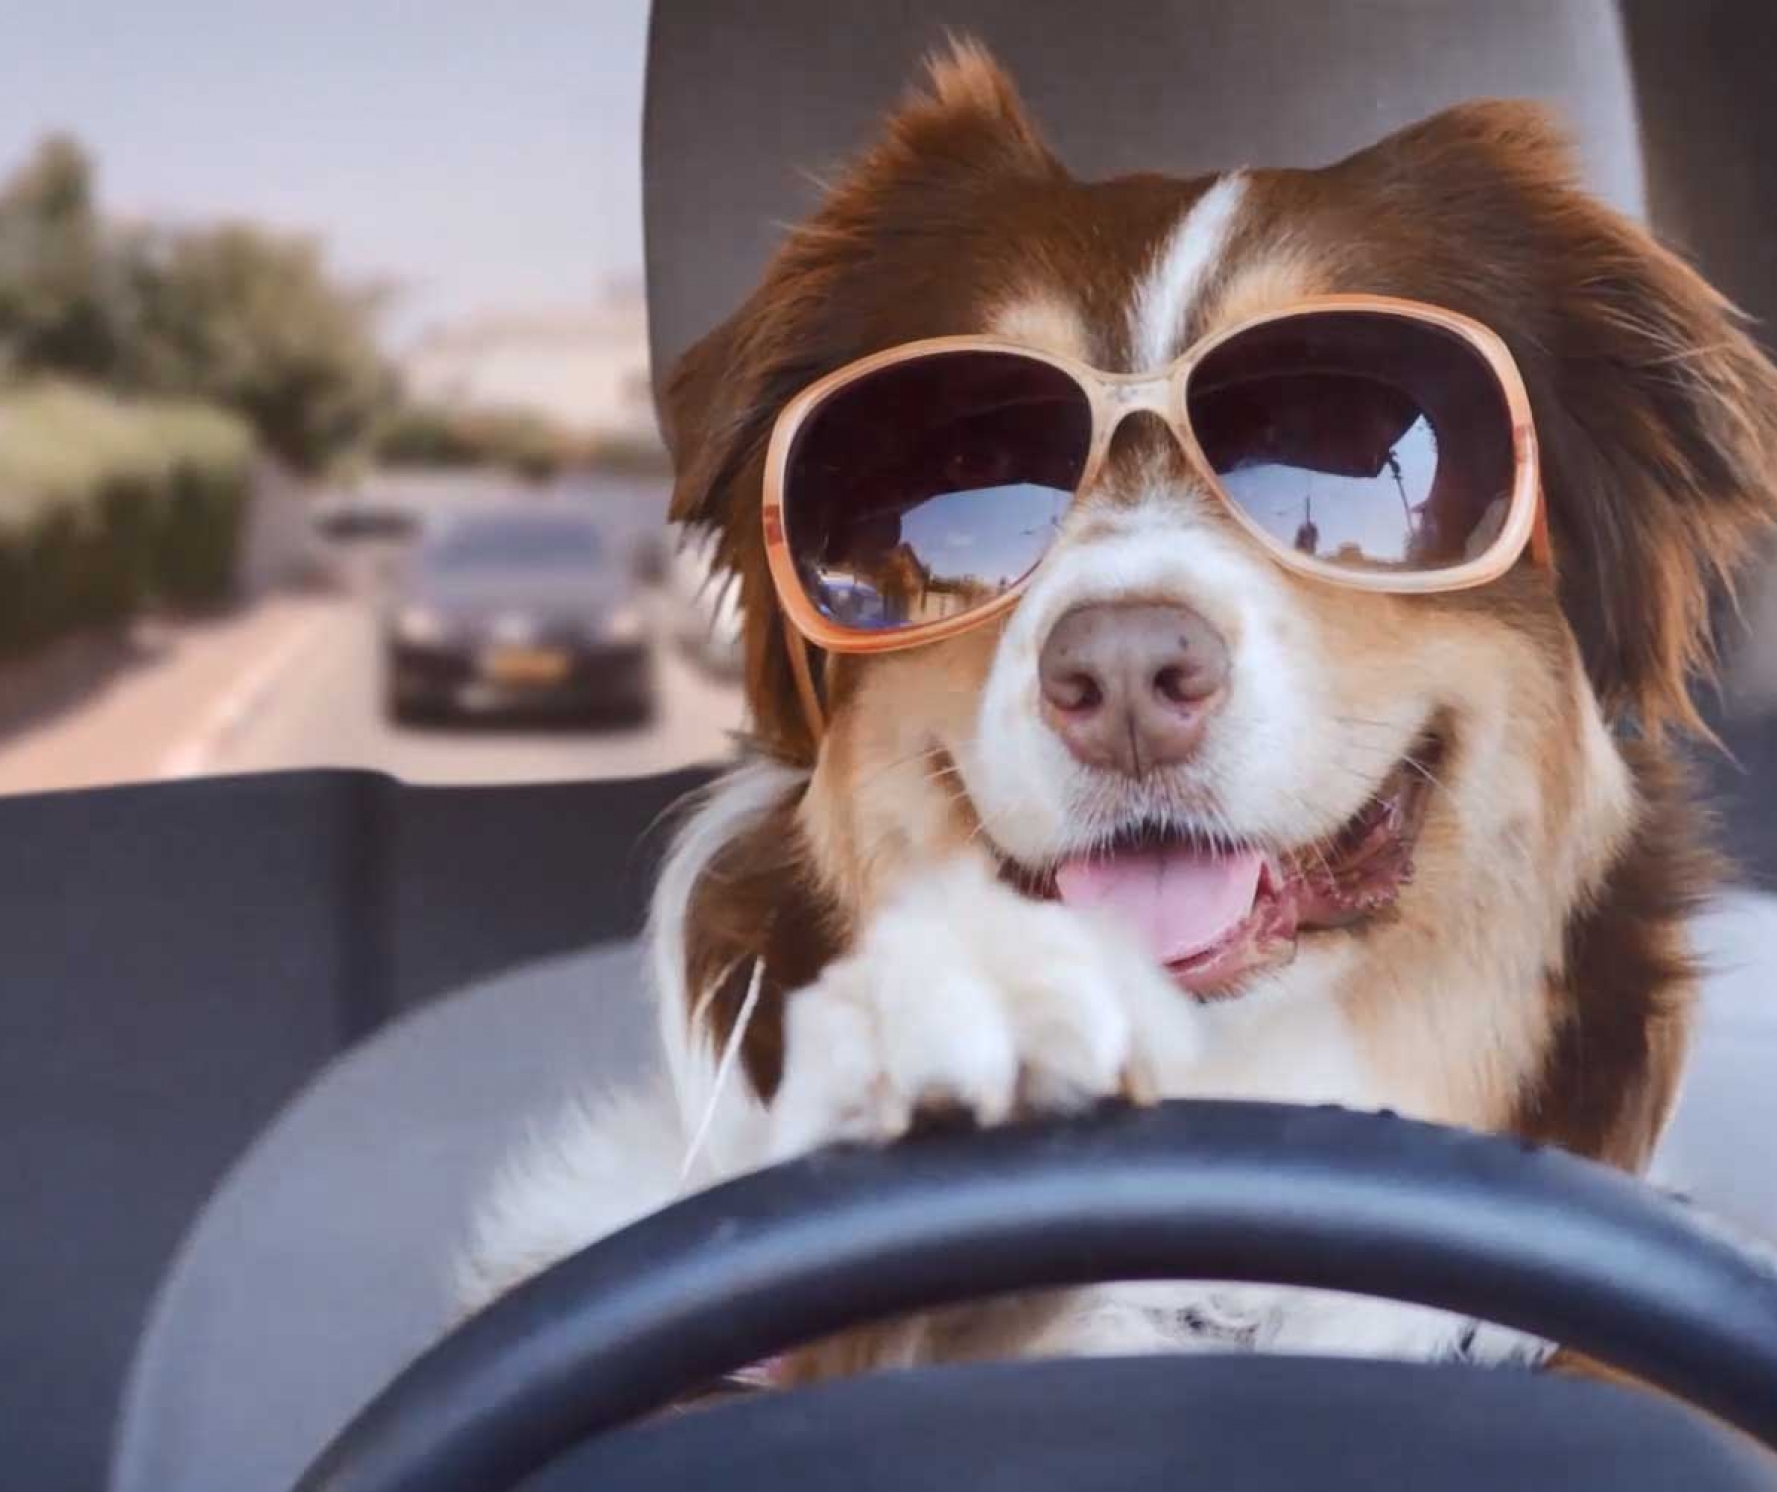 Dog in glasses drives a car